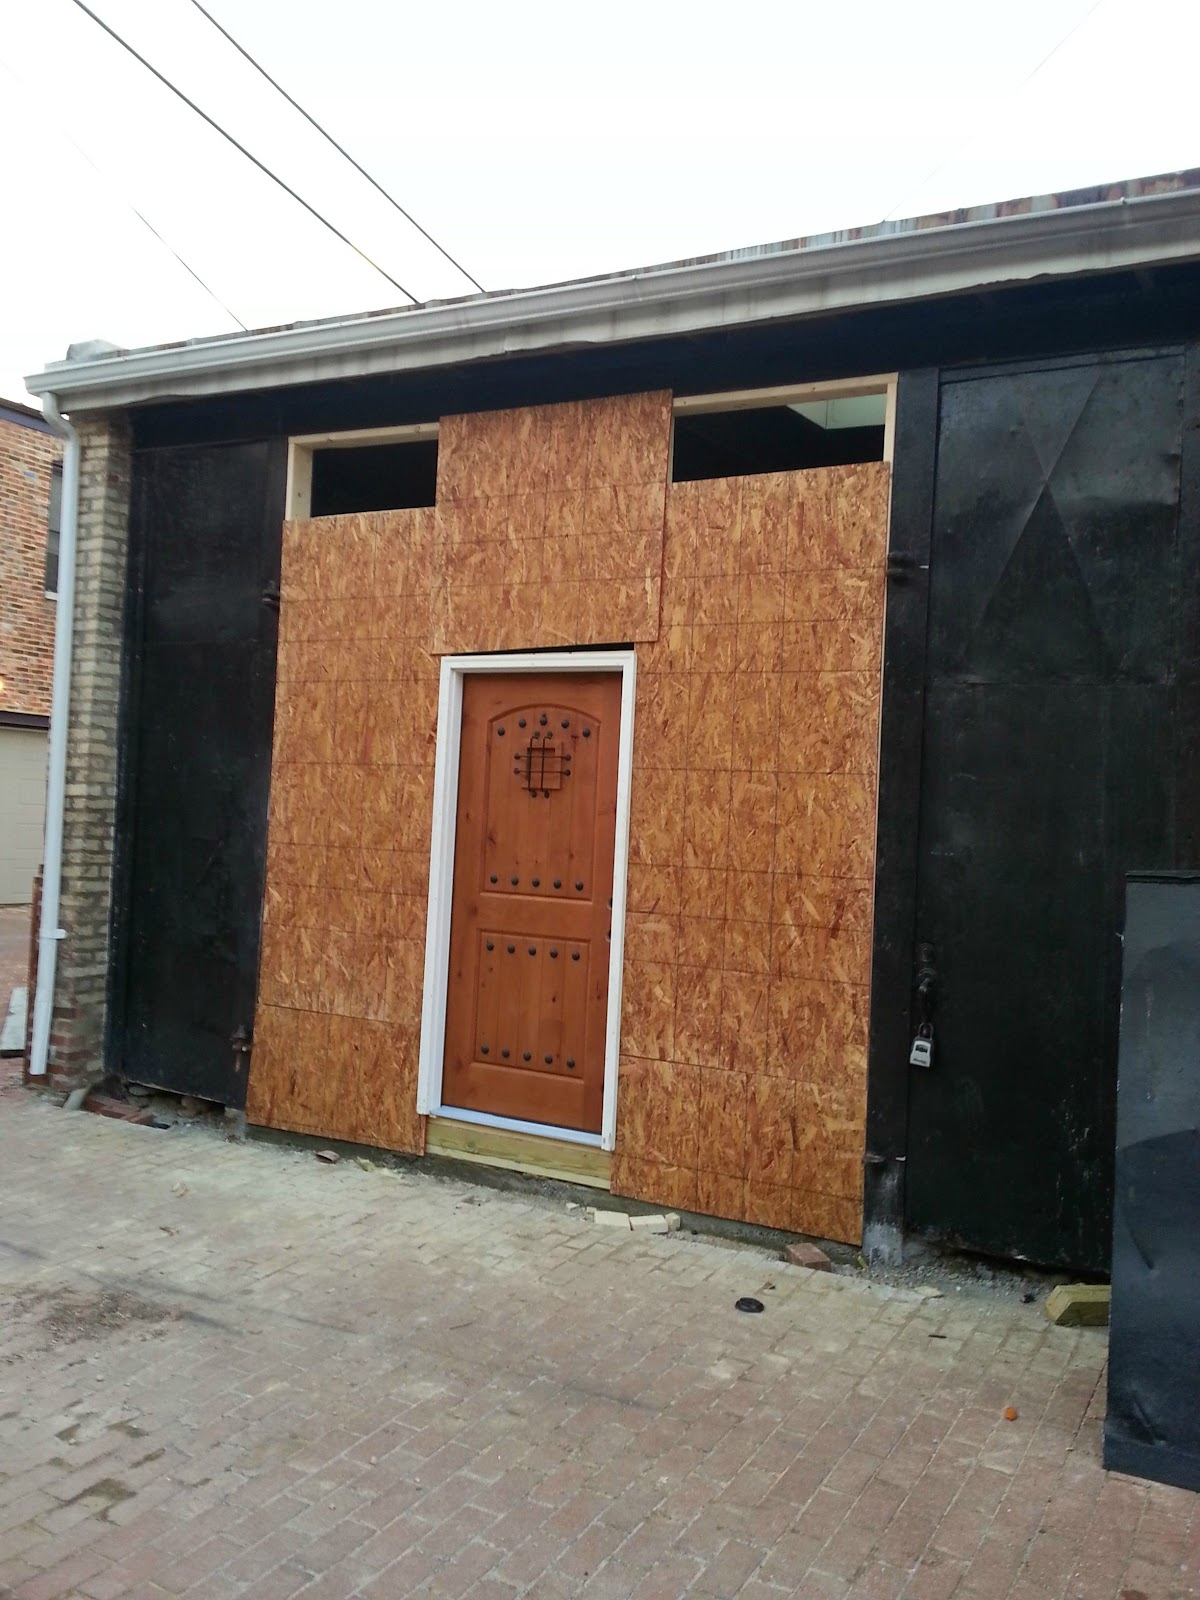 15-New-exterior-door-imgur-Storage-Unit-Renovation-in-Tiny-Architecture-www-designstack-co